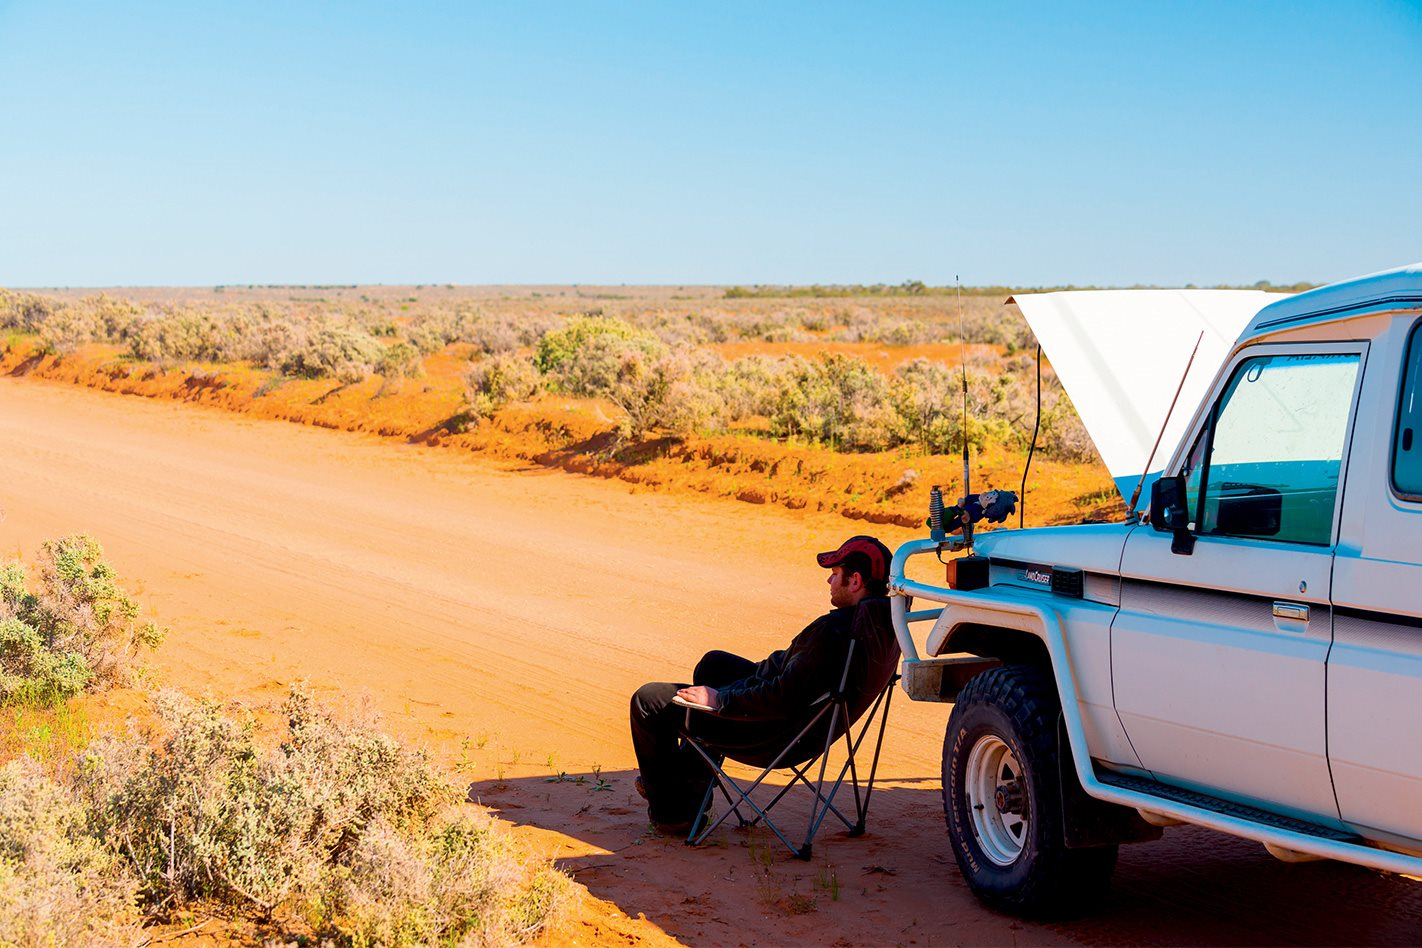 How to survive in the outback if your car breaks down